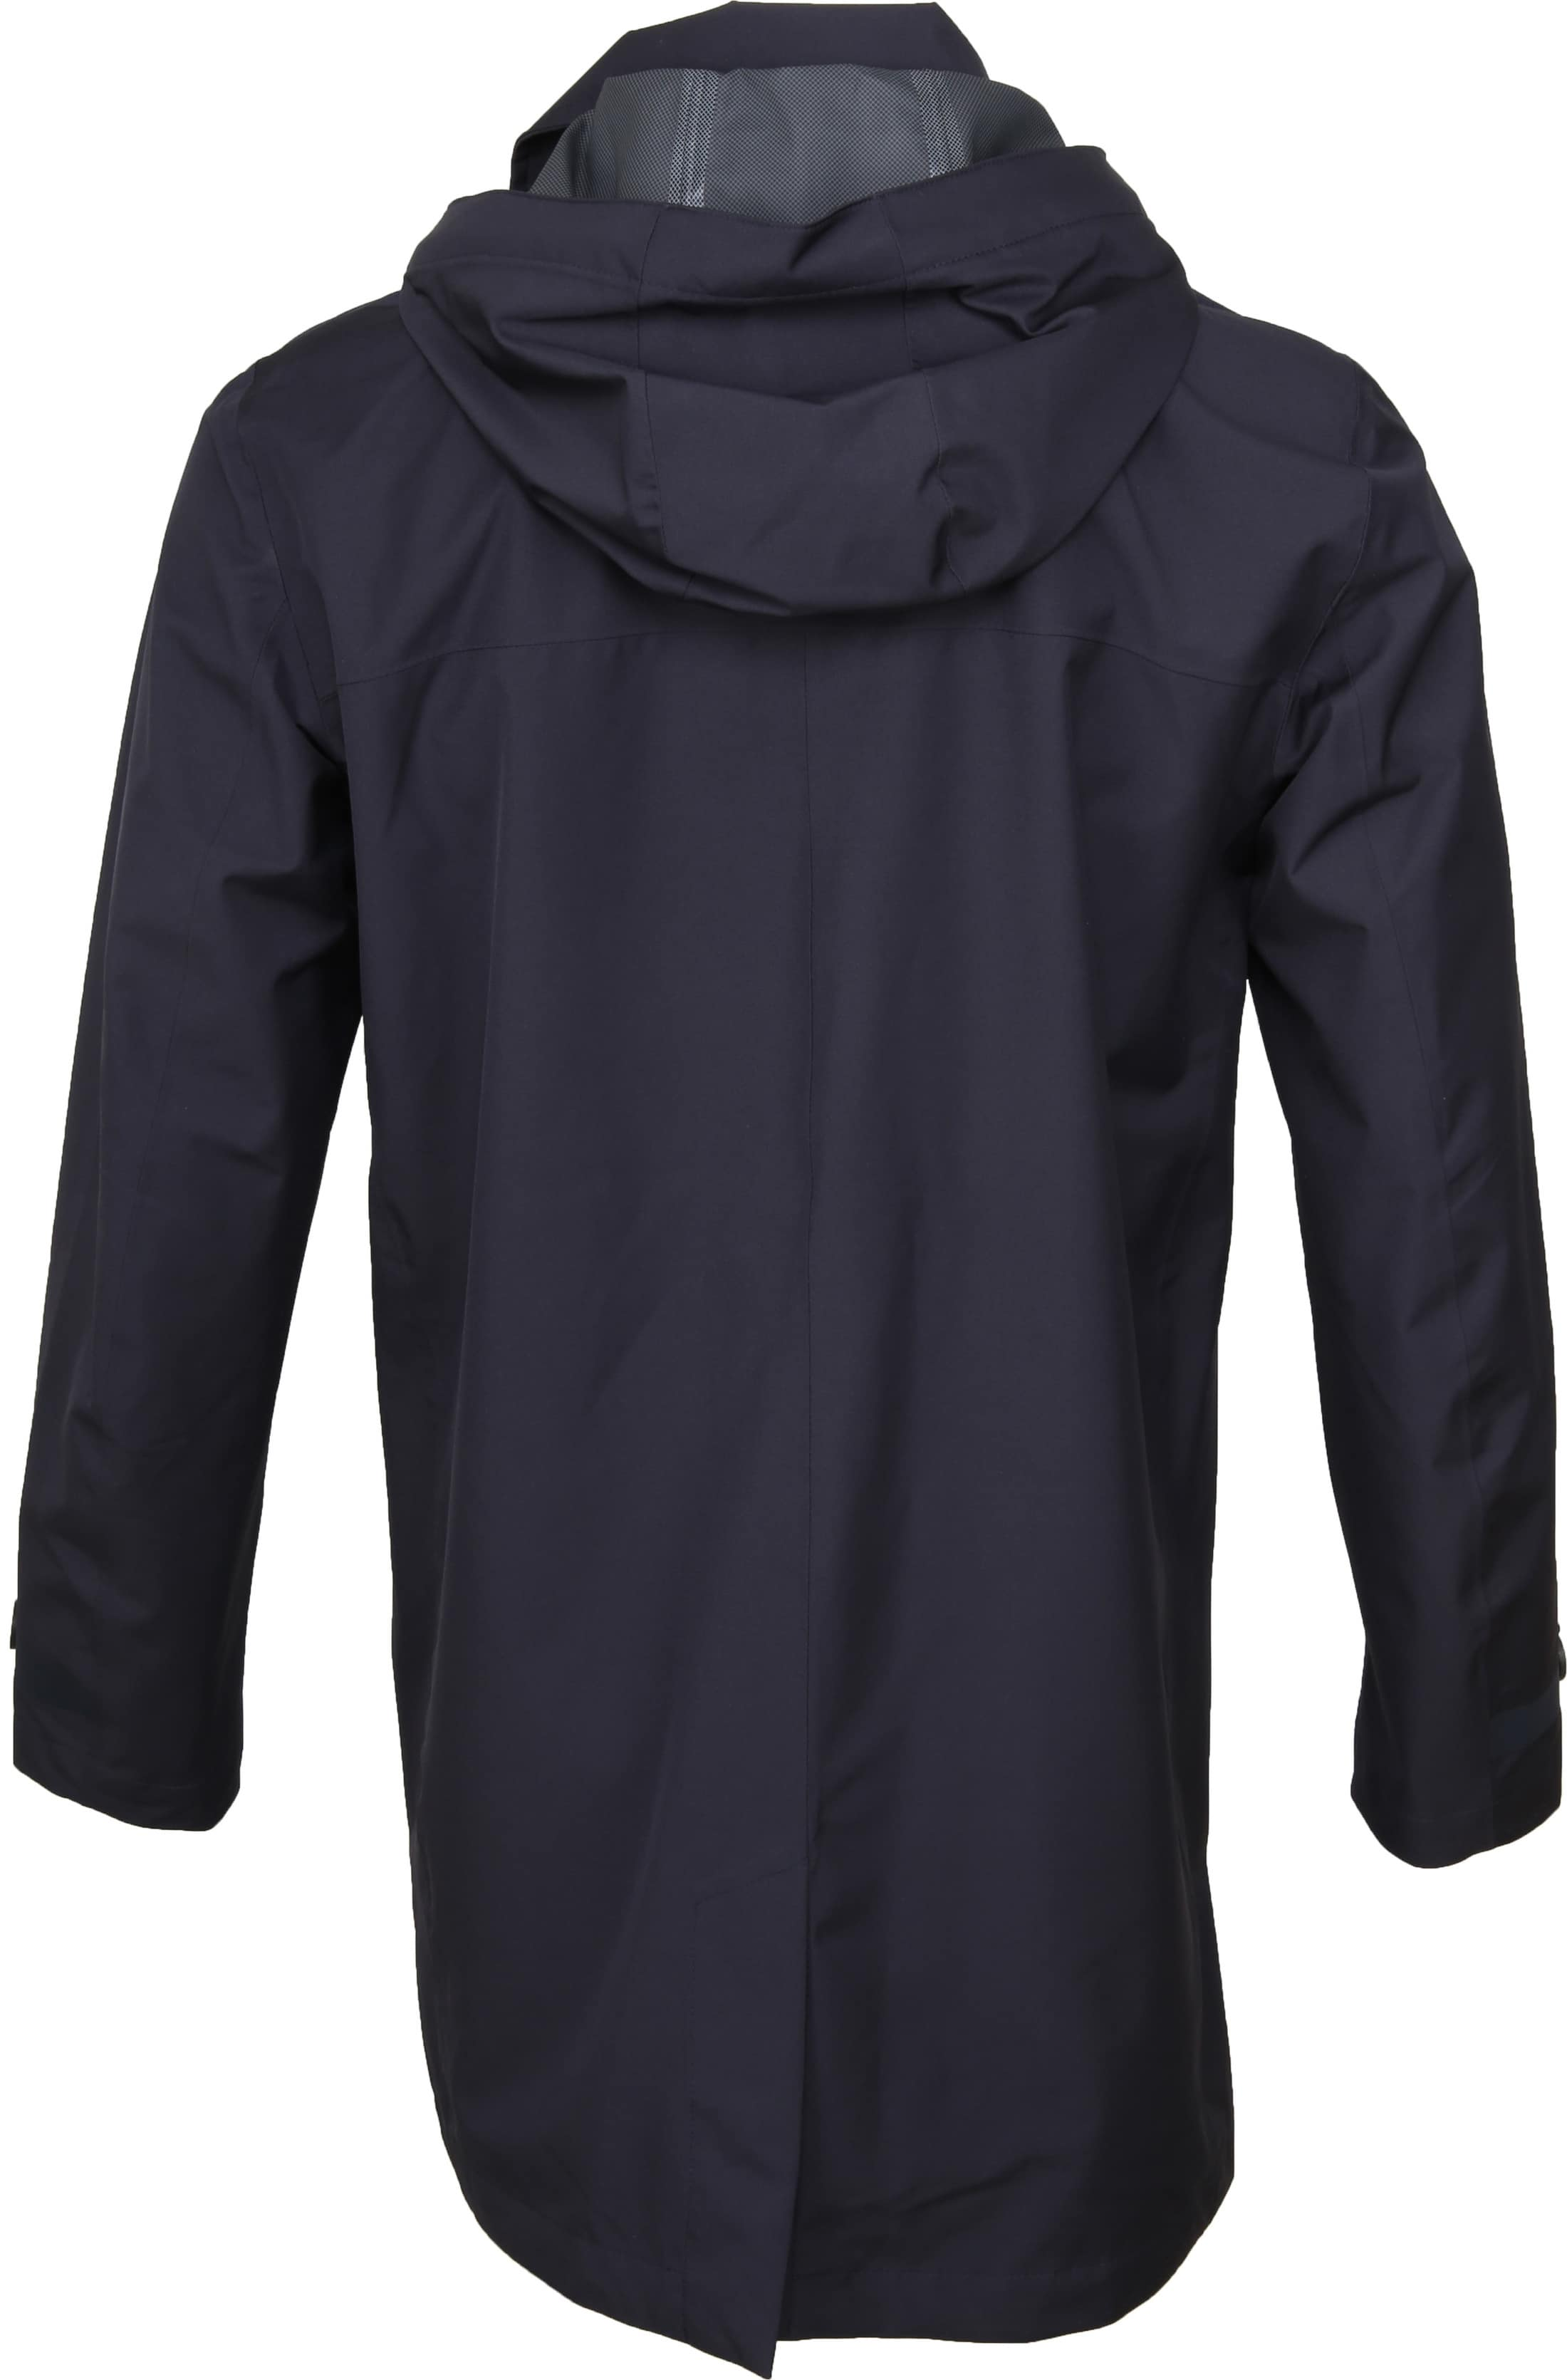 Geox Coat Sandford Navy foto 6